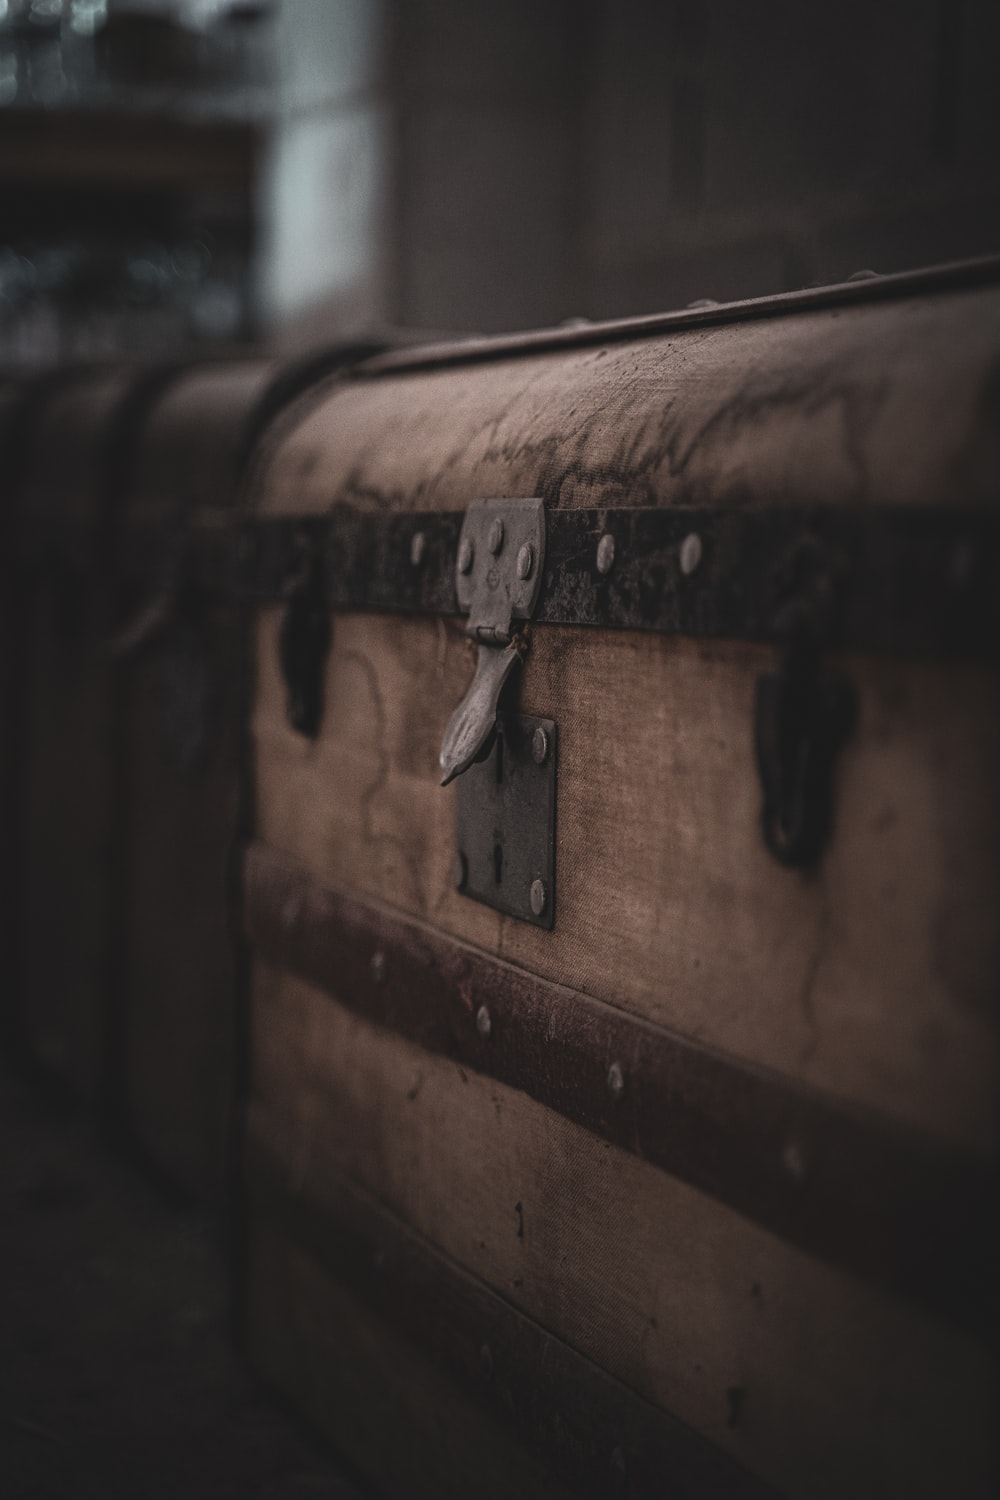 brown and black suitcase in close up photography